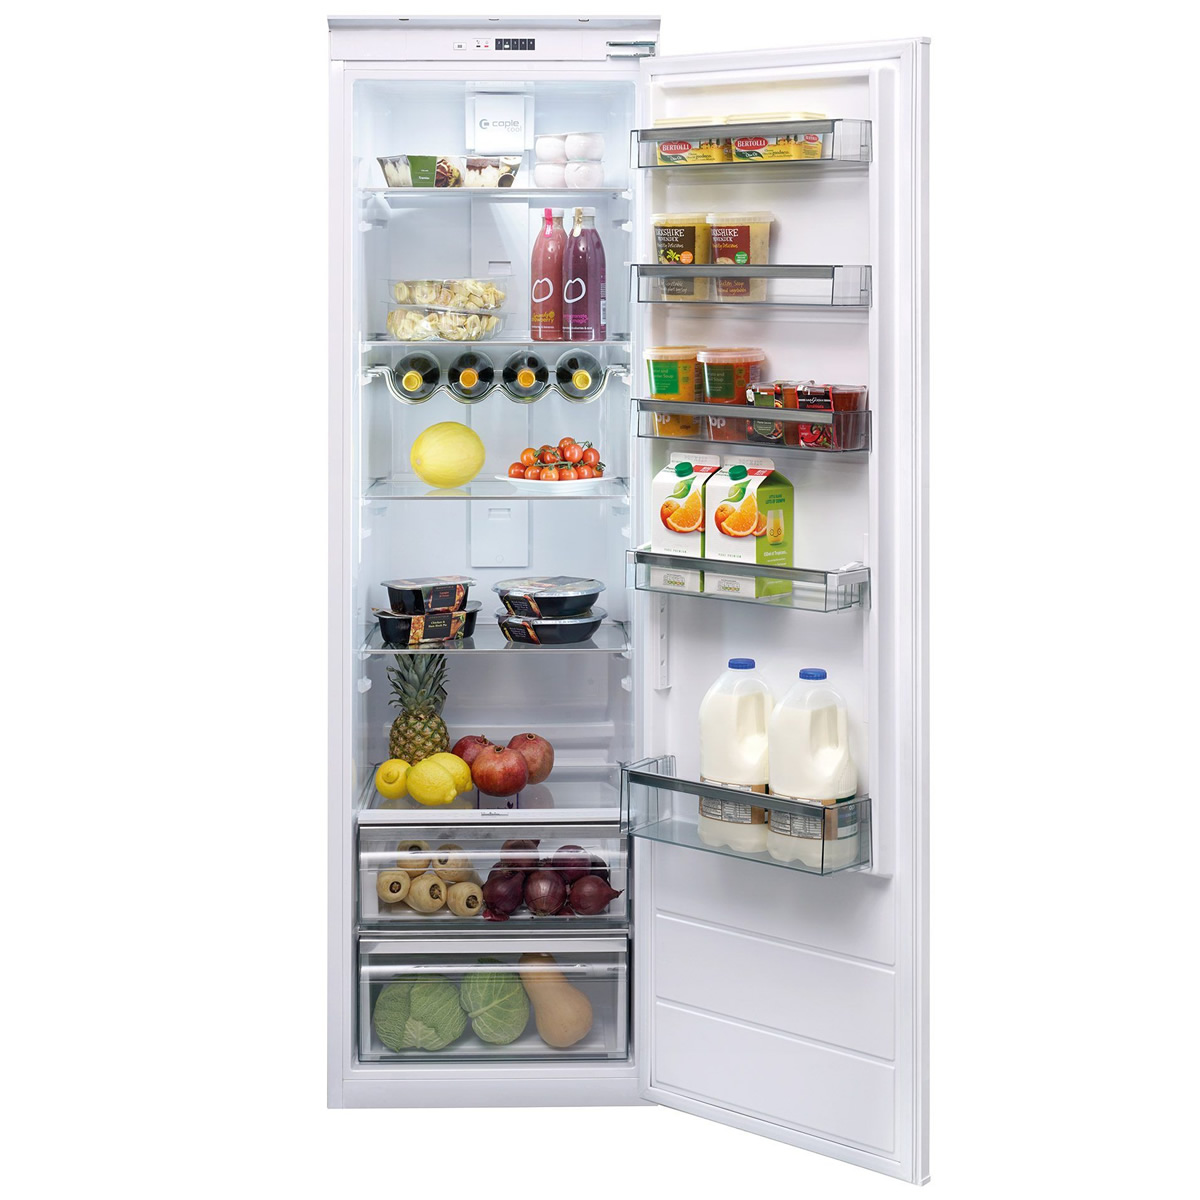 303litre Integrated Fridge Auto Defrost Class A+